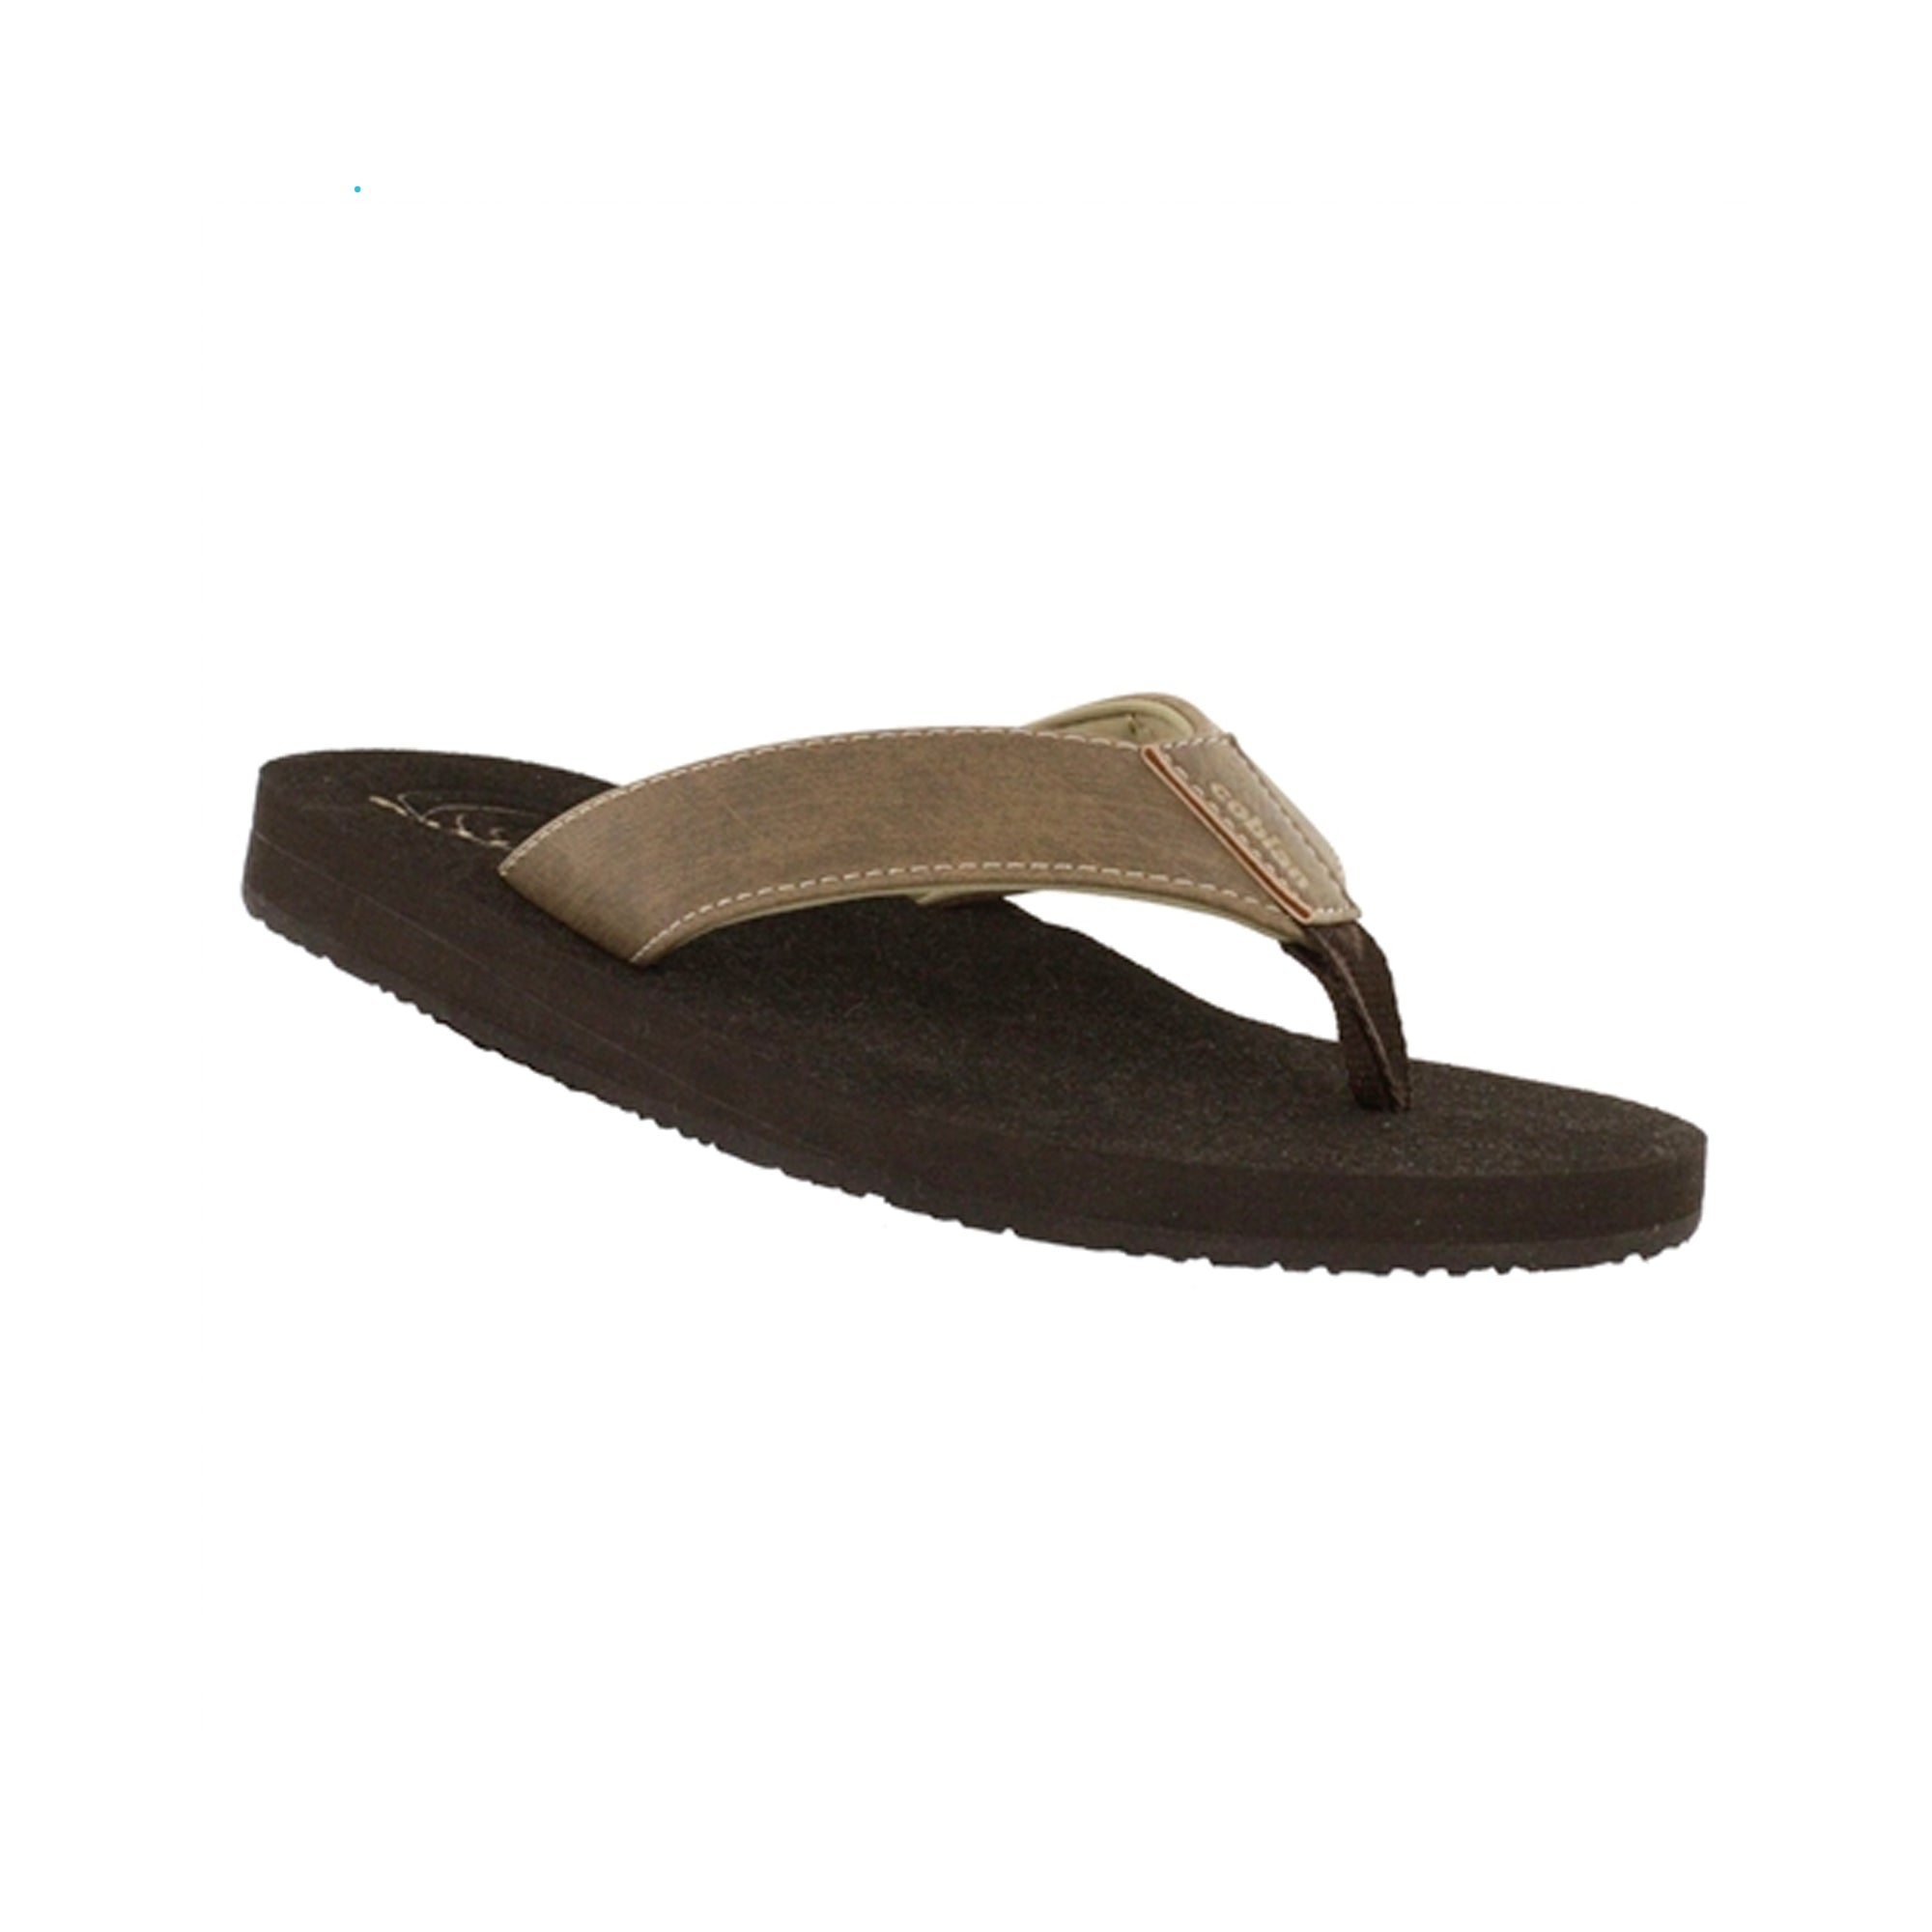 Cobian Floater 2 Men's Sandals